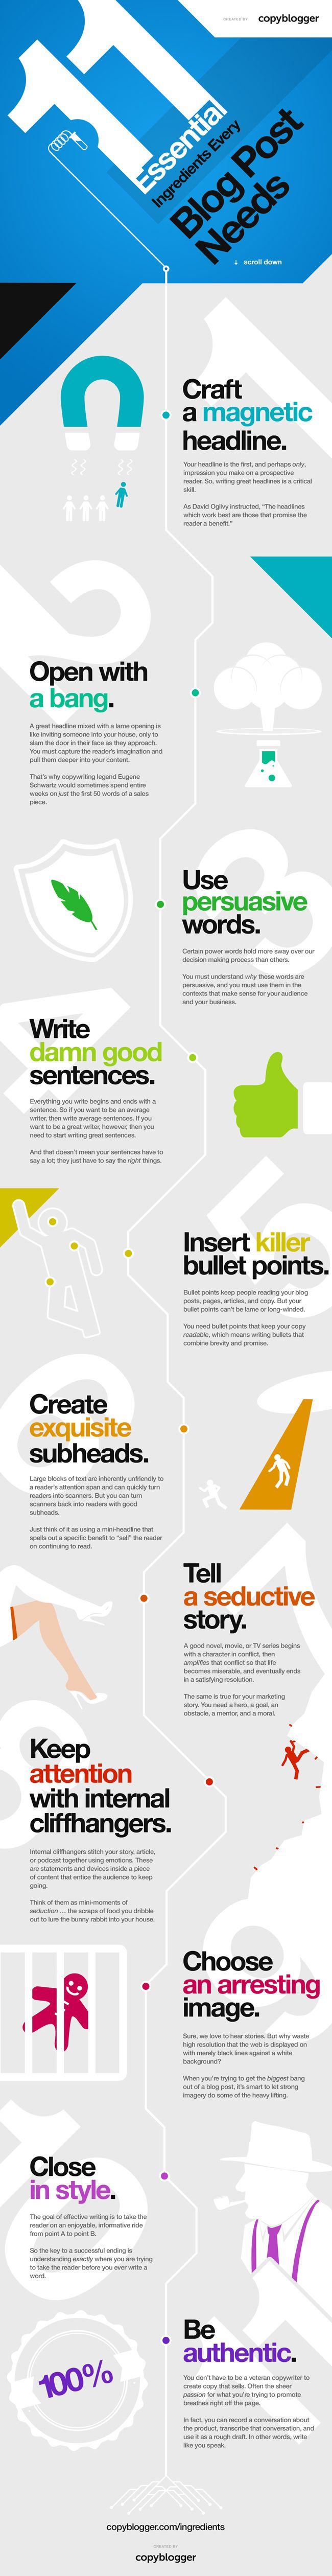 11 Essential Ingredients Every Blog Post Needs [Infographic] - Copyblogger